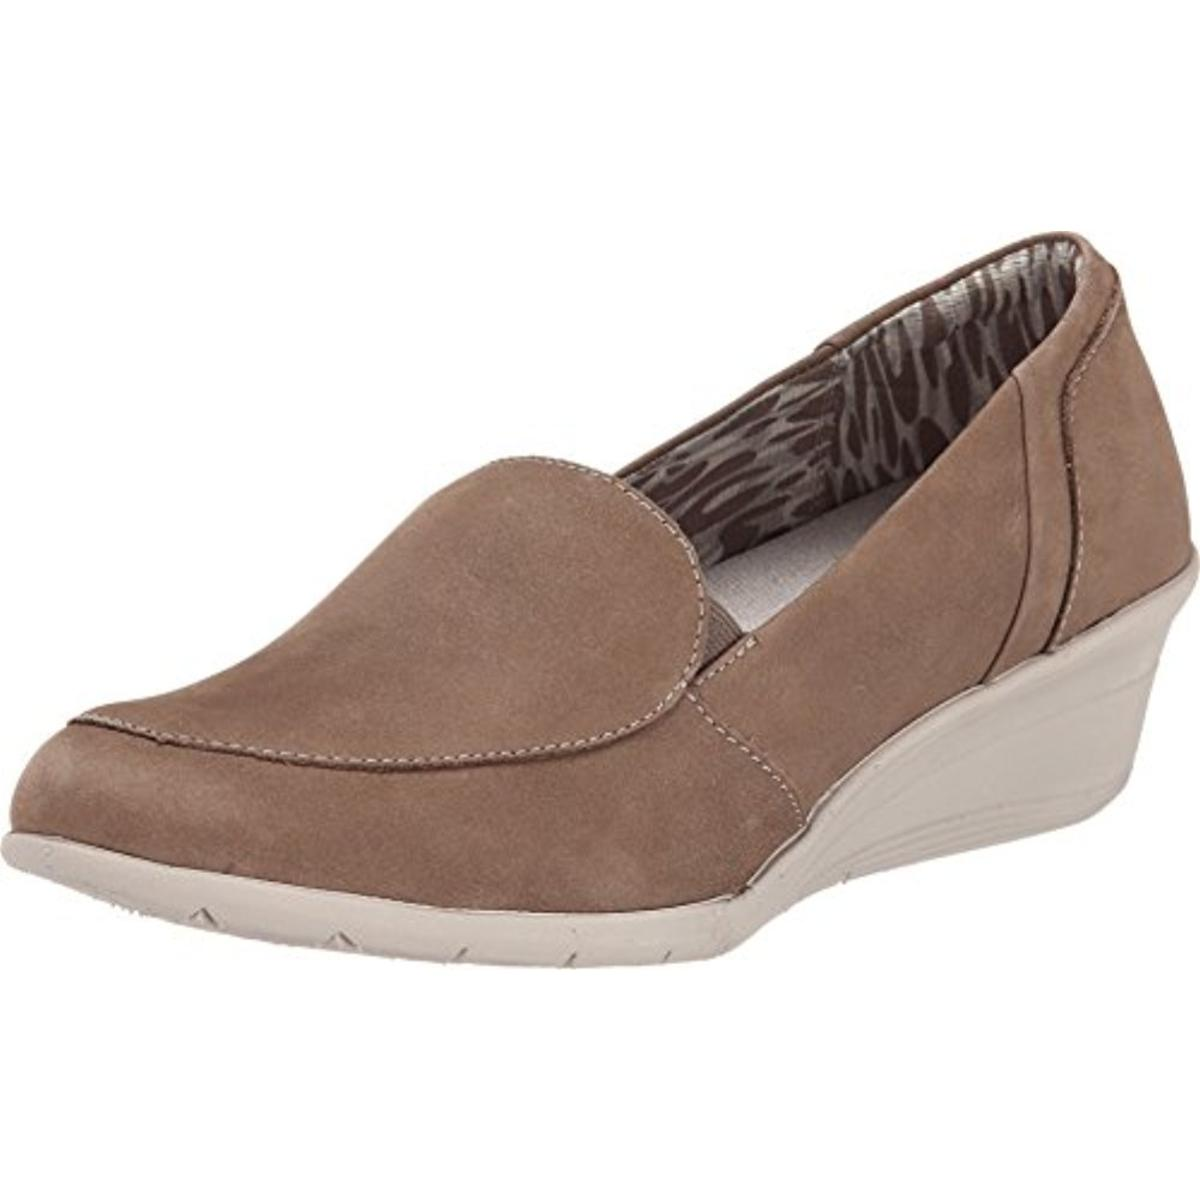 Hush Puppies Wide Womens Shoes